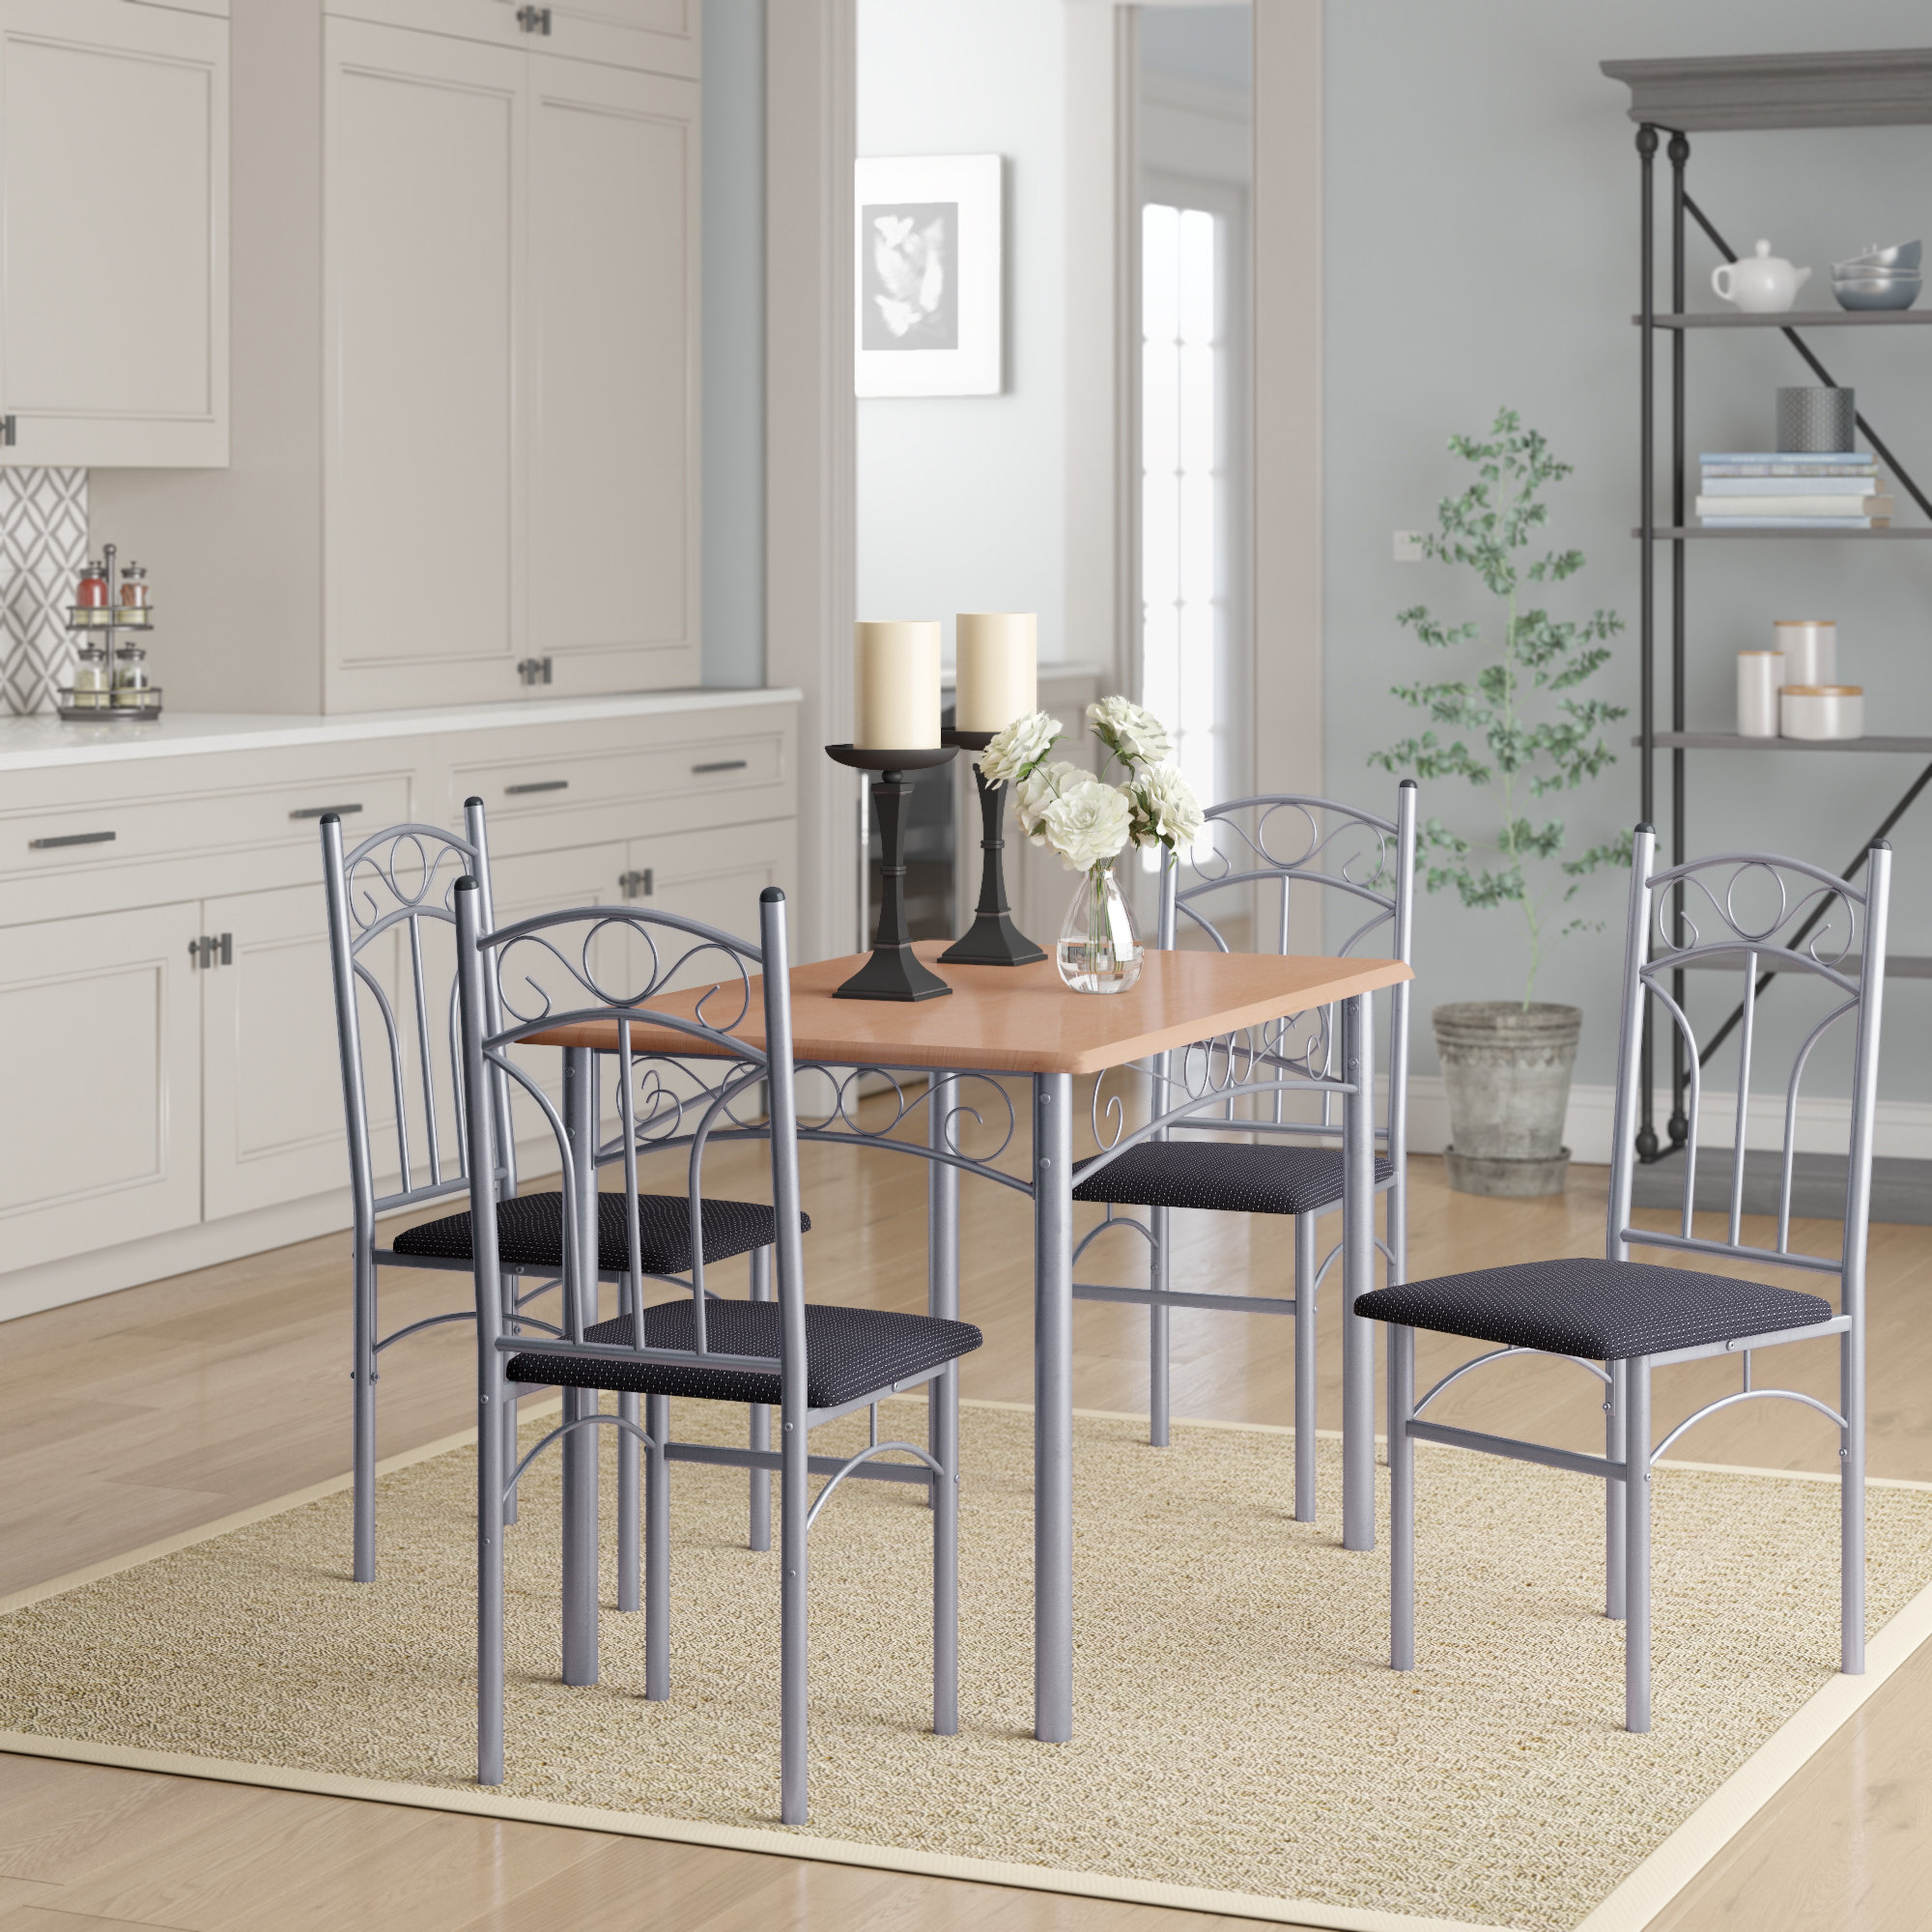 Turnalar 5 Piece Dining Set With Most Current Stouferberg 5 Piece Dining Sets (Image 19 of 20)